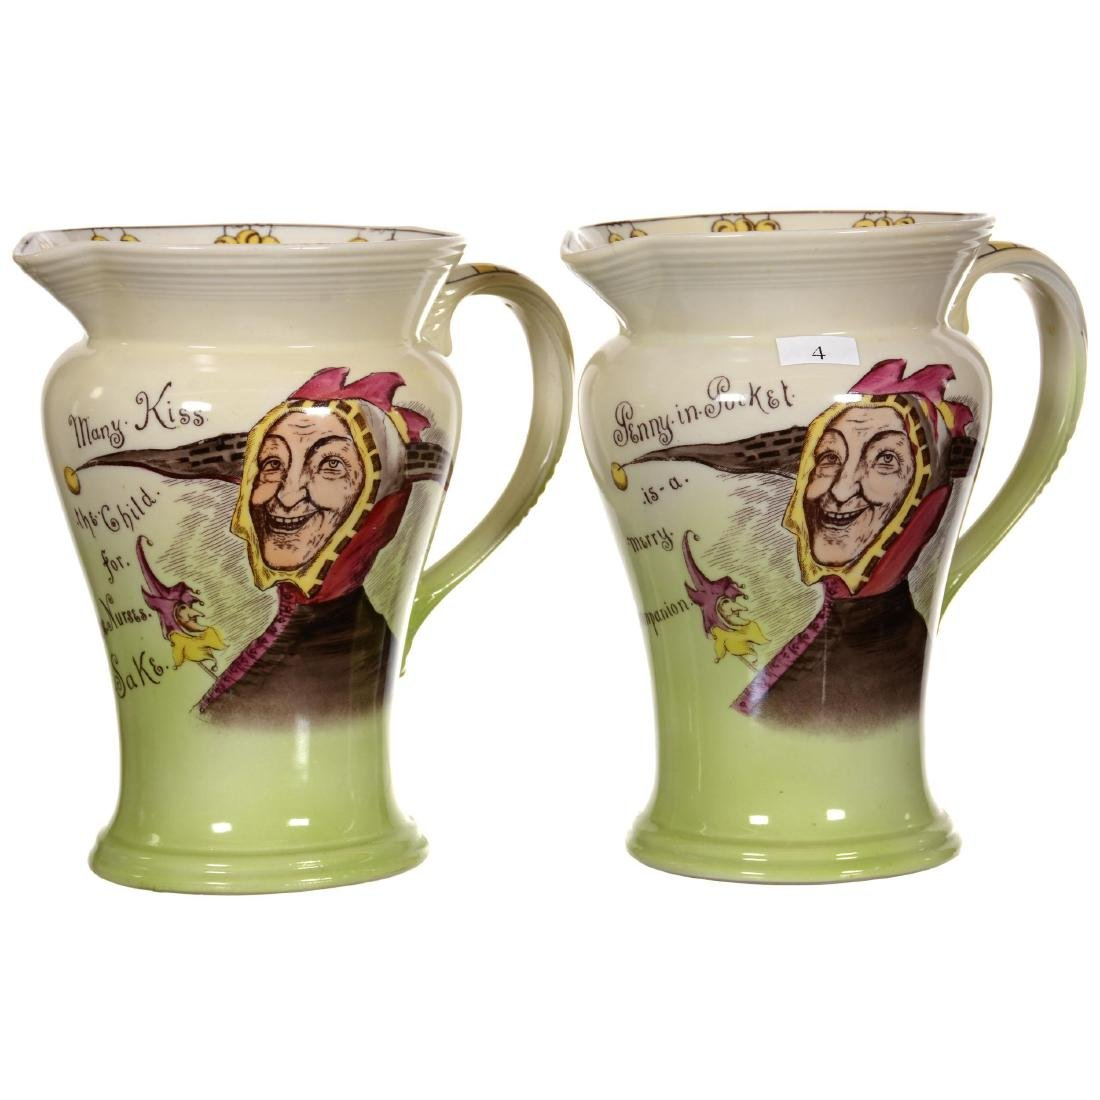 Two Rare Unmarked Royal Bayreuth Jester Scene Pitchers